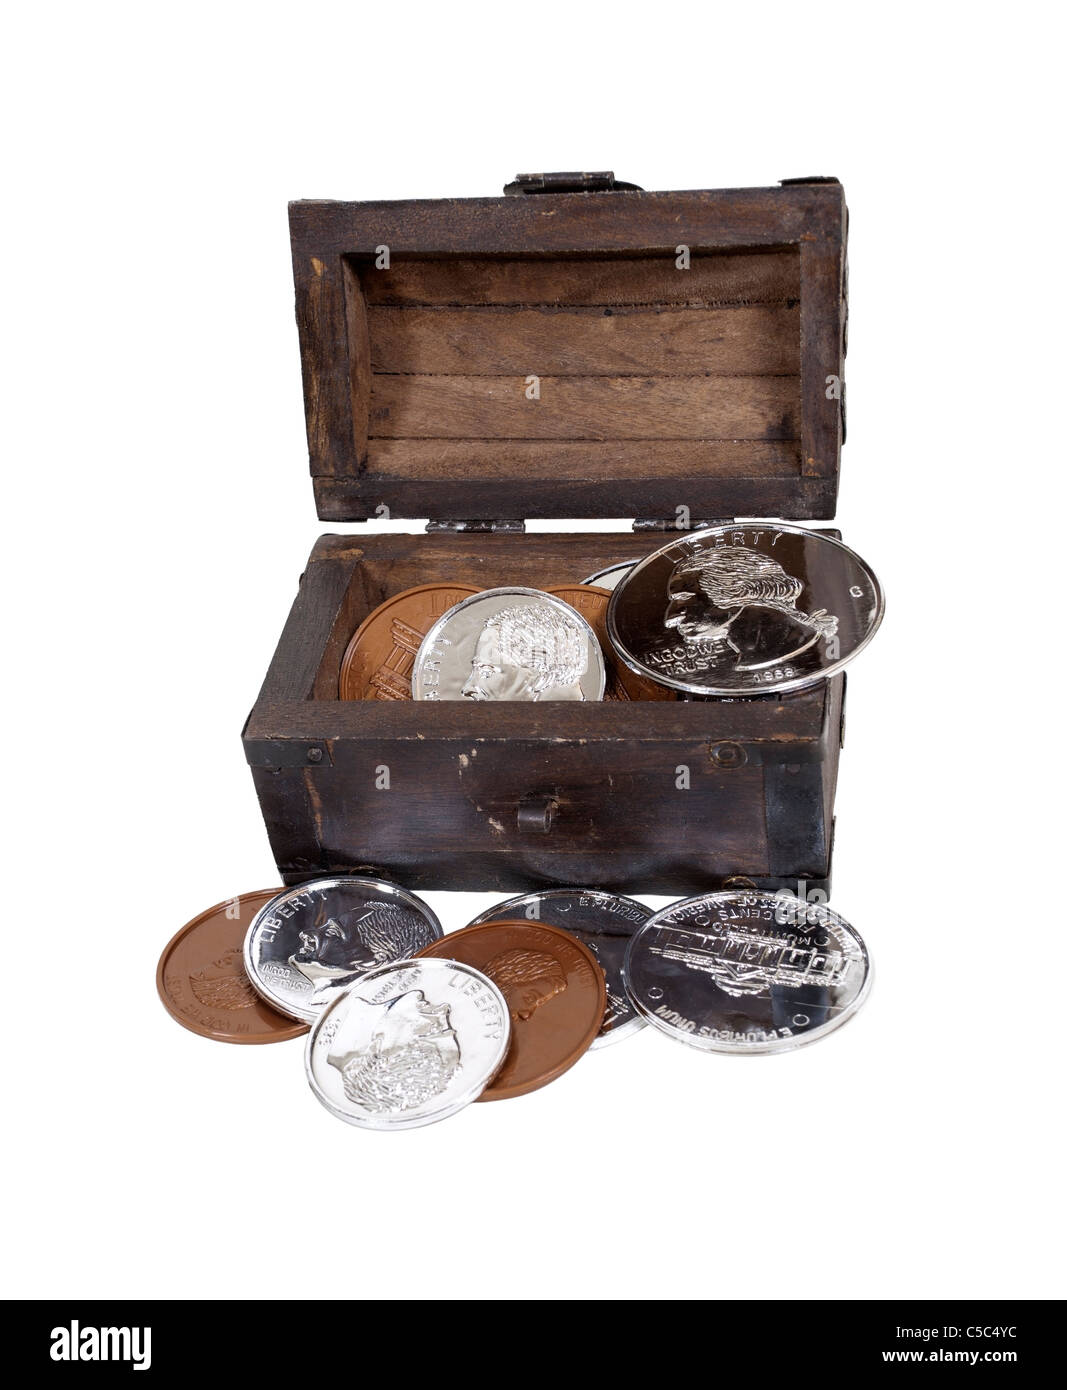 A collection of coins in a trunk representing big savings - path included - Stock Image